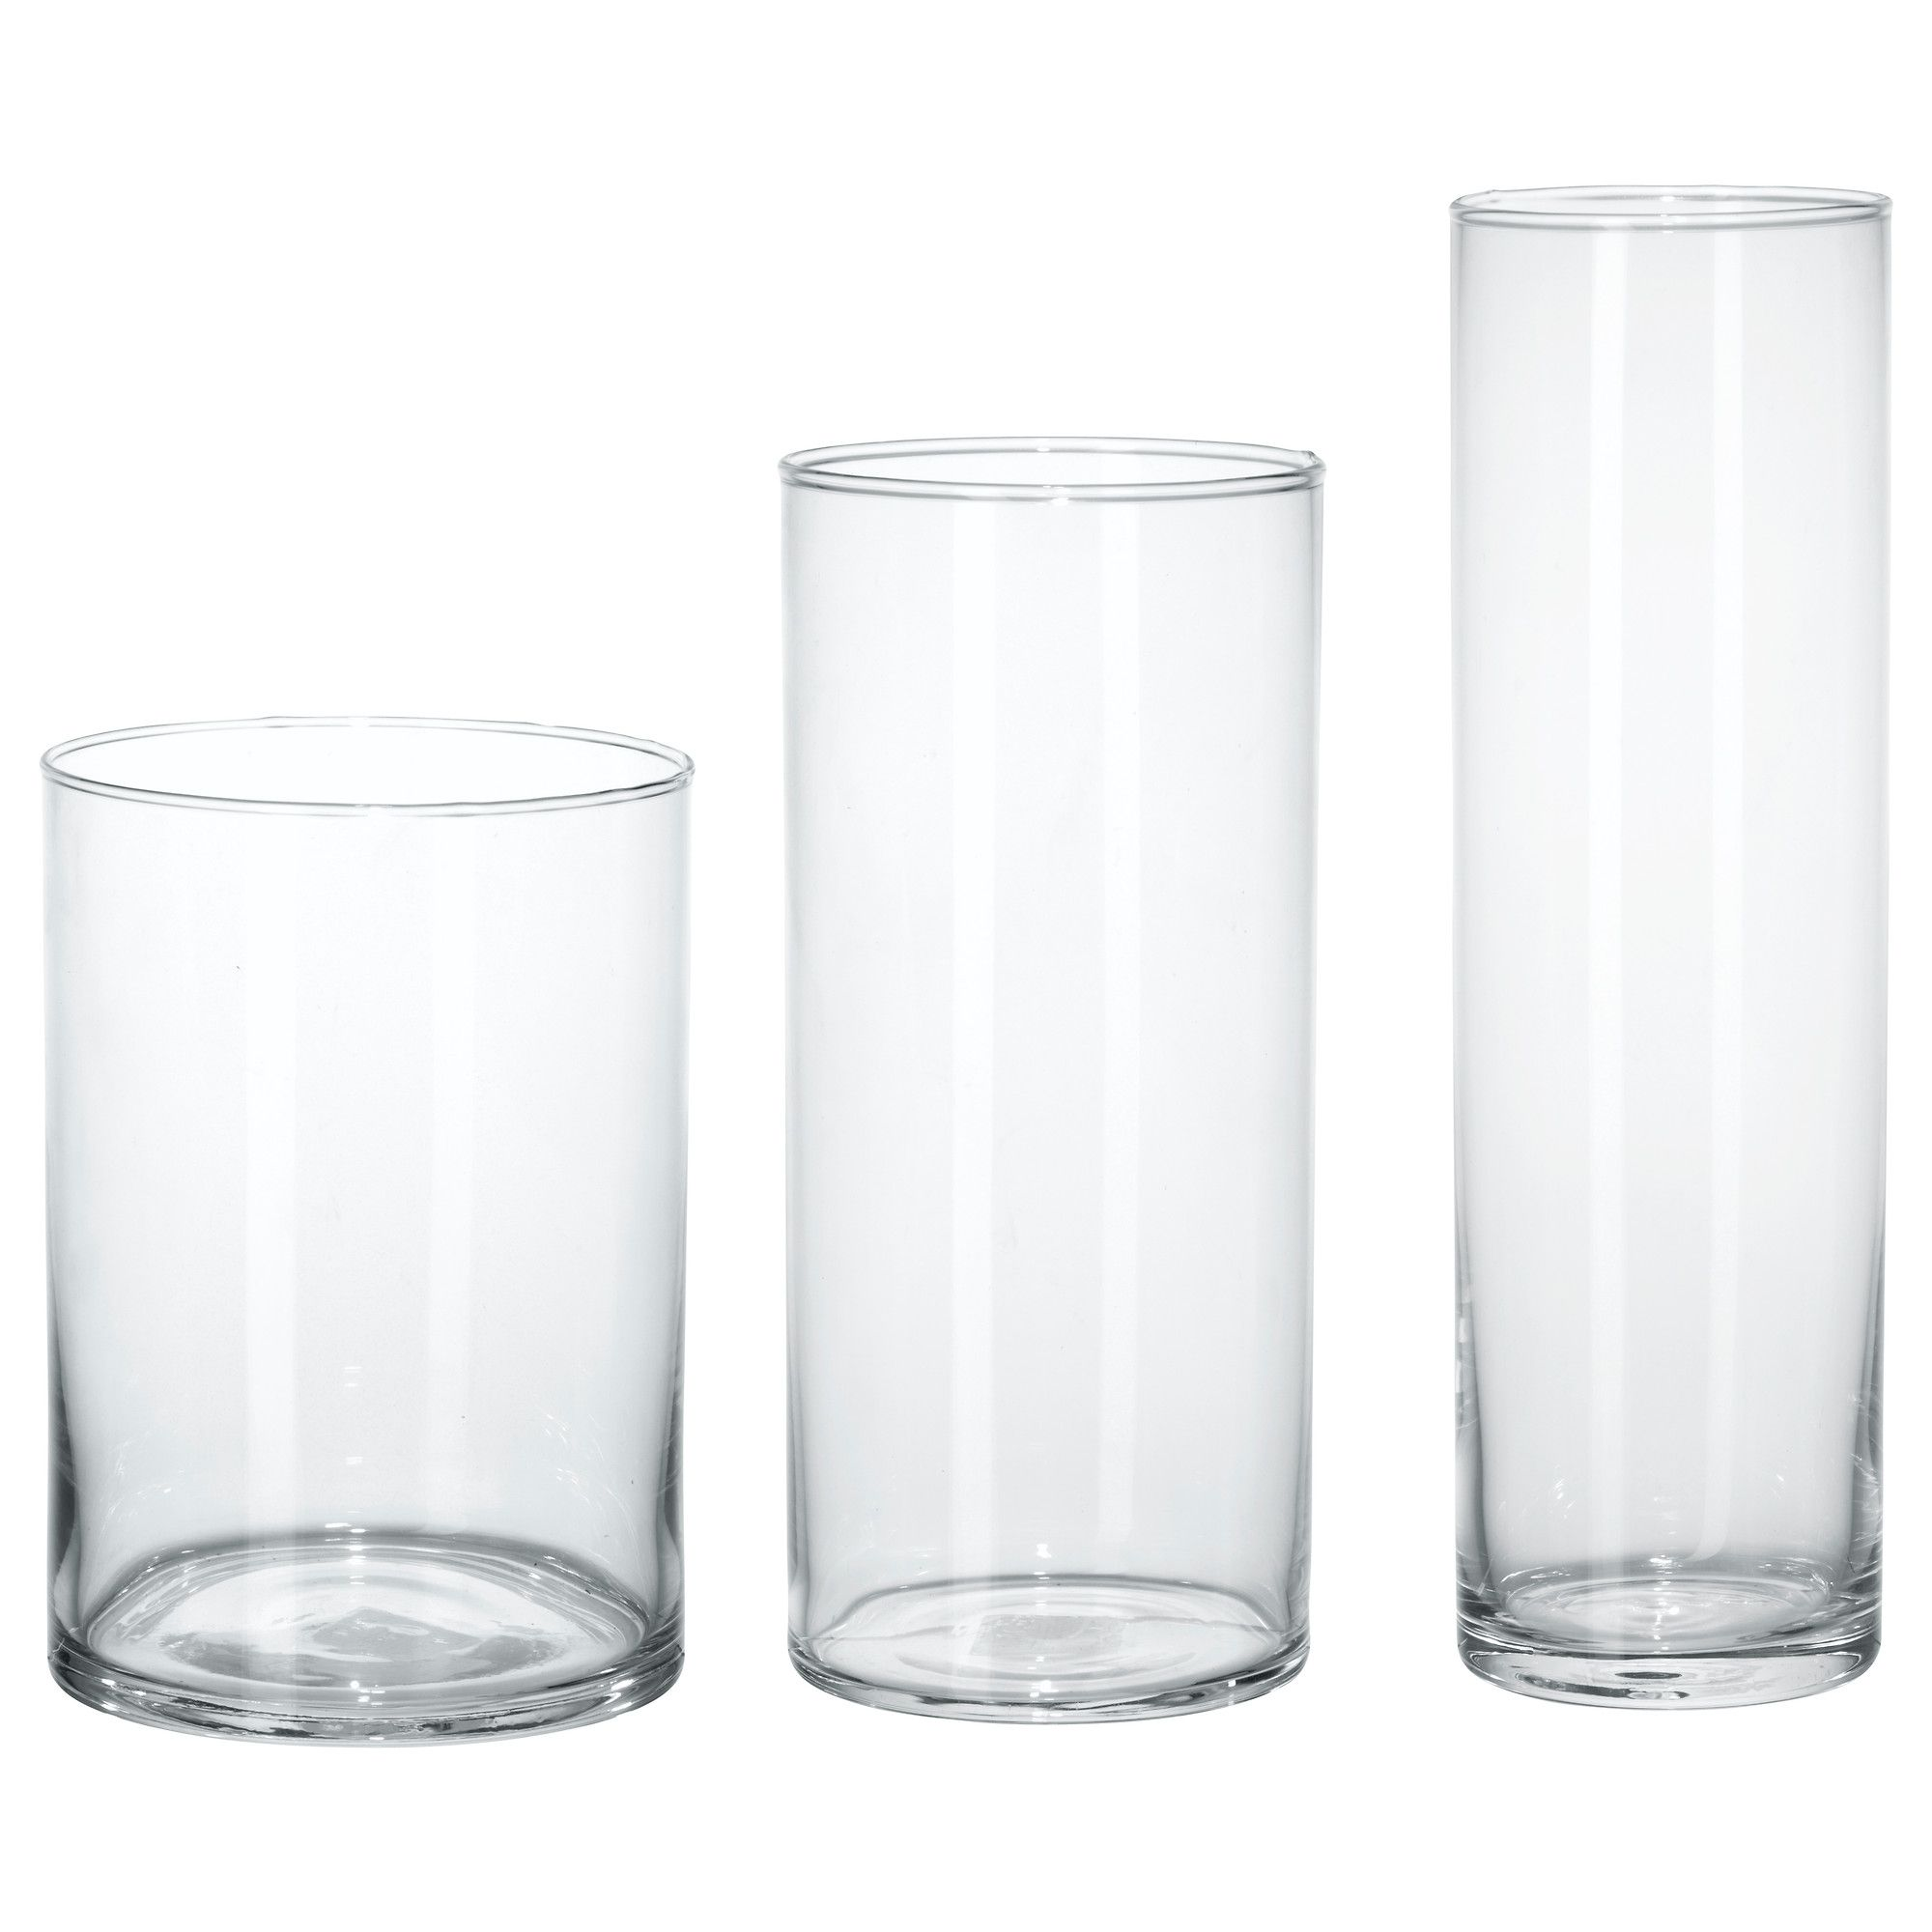 cylinder vase, set of 3, clear glass in 2018 | choose your destiny